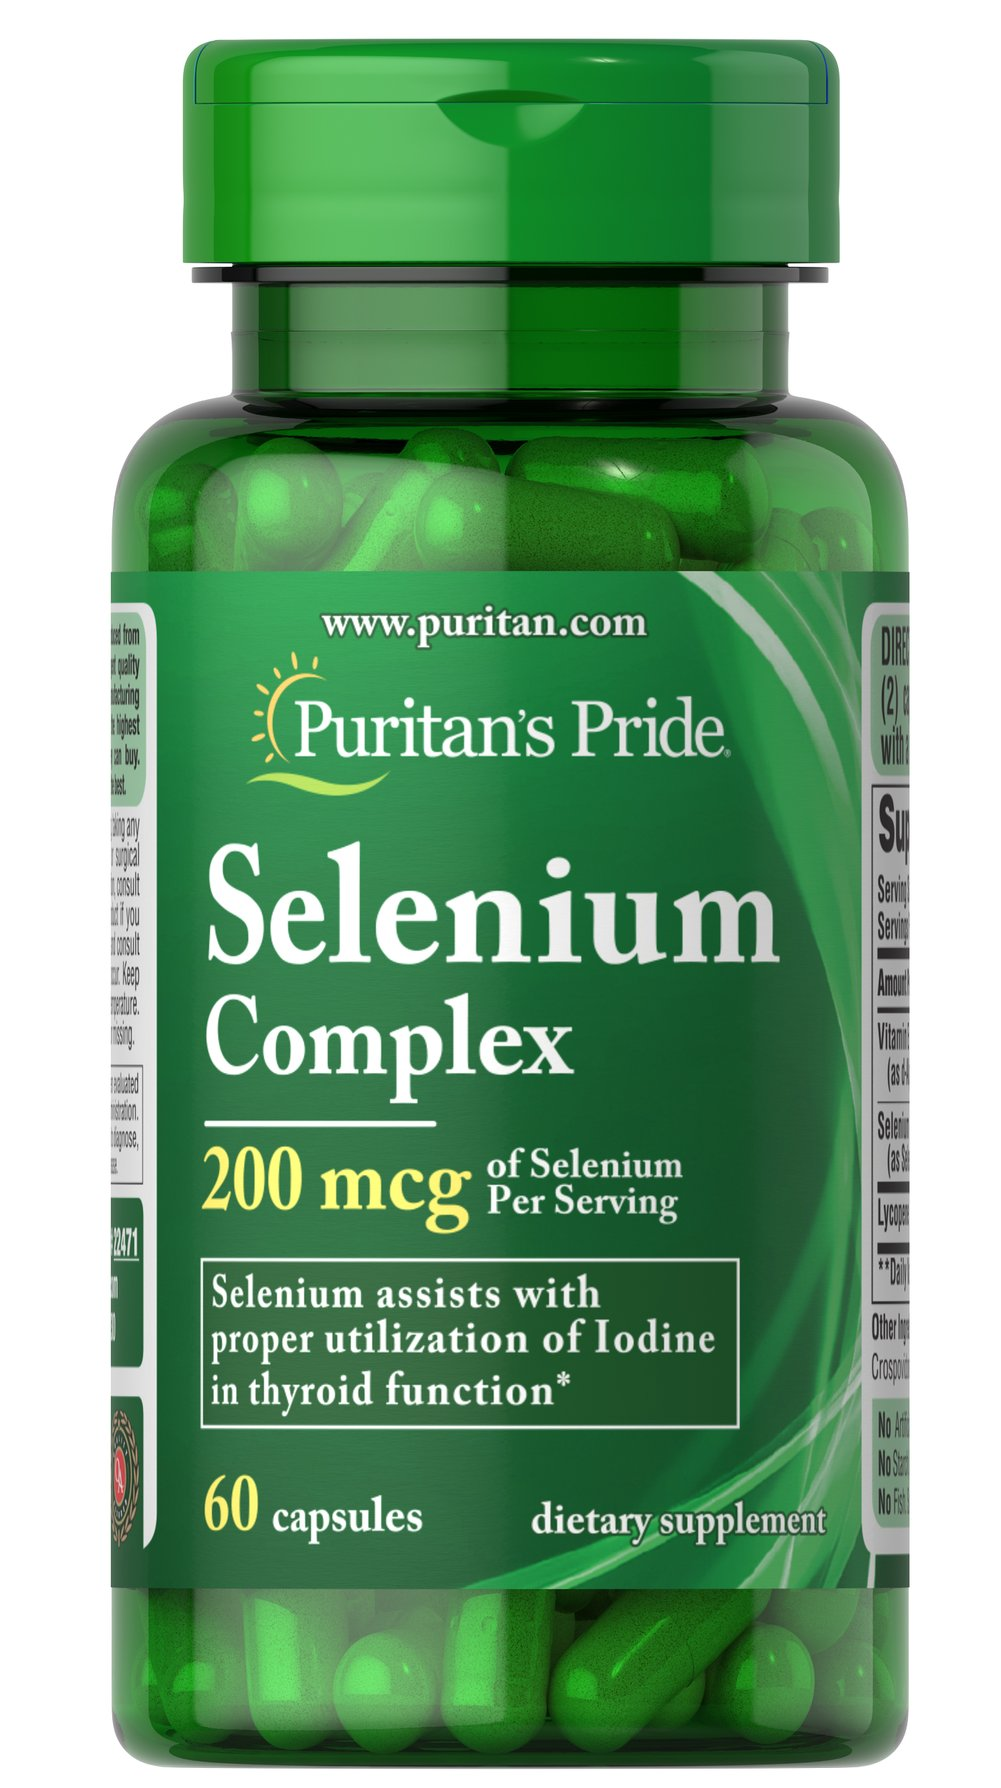 Selenium Complex 200 mcg Thumbnail Alternate Bottle View